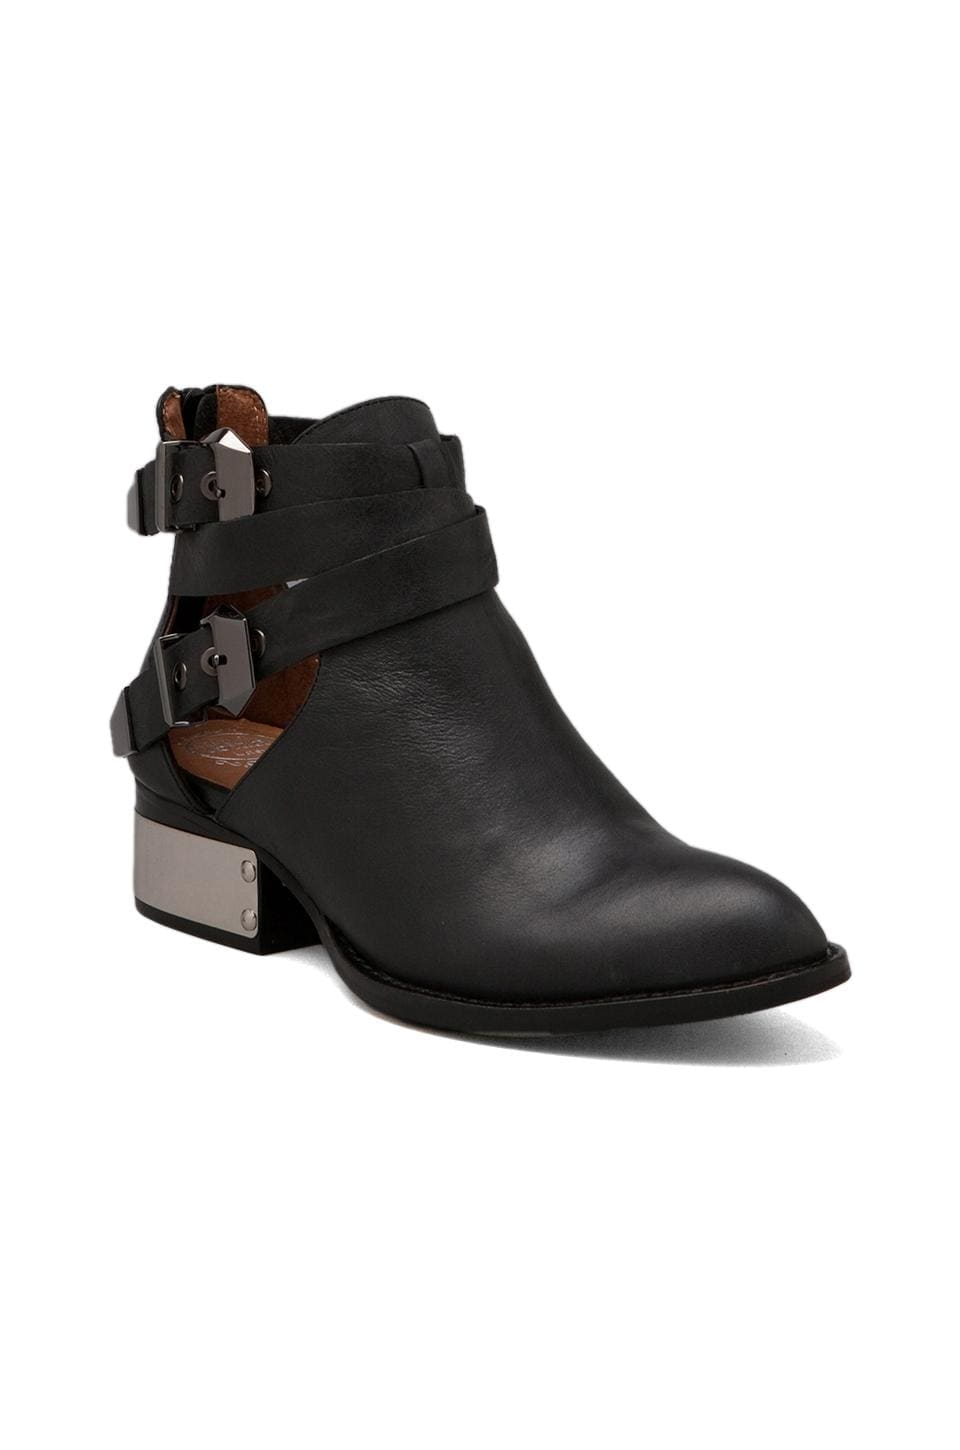 Jeffrey Campbell Everly Bootie w/ Buckles in Black/Silver